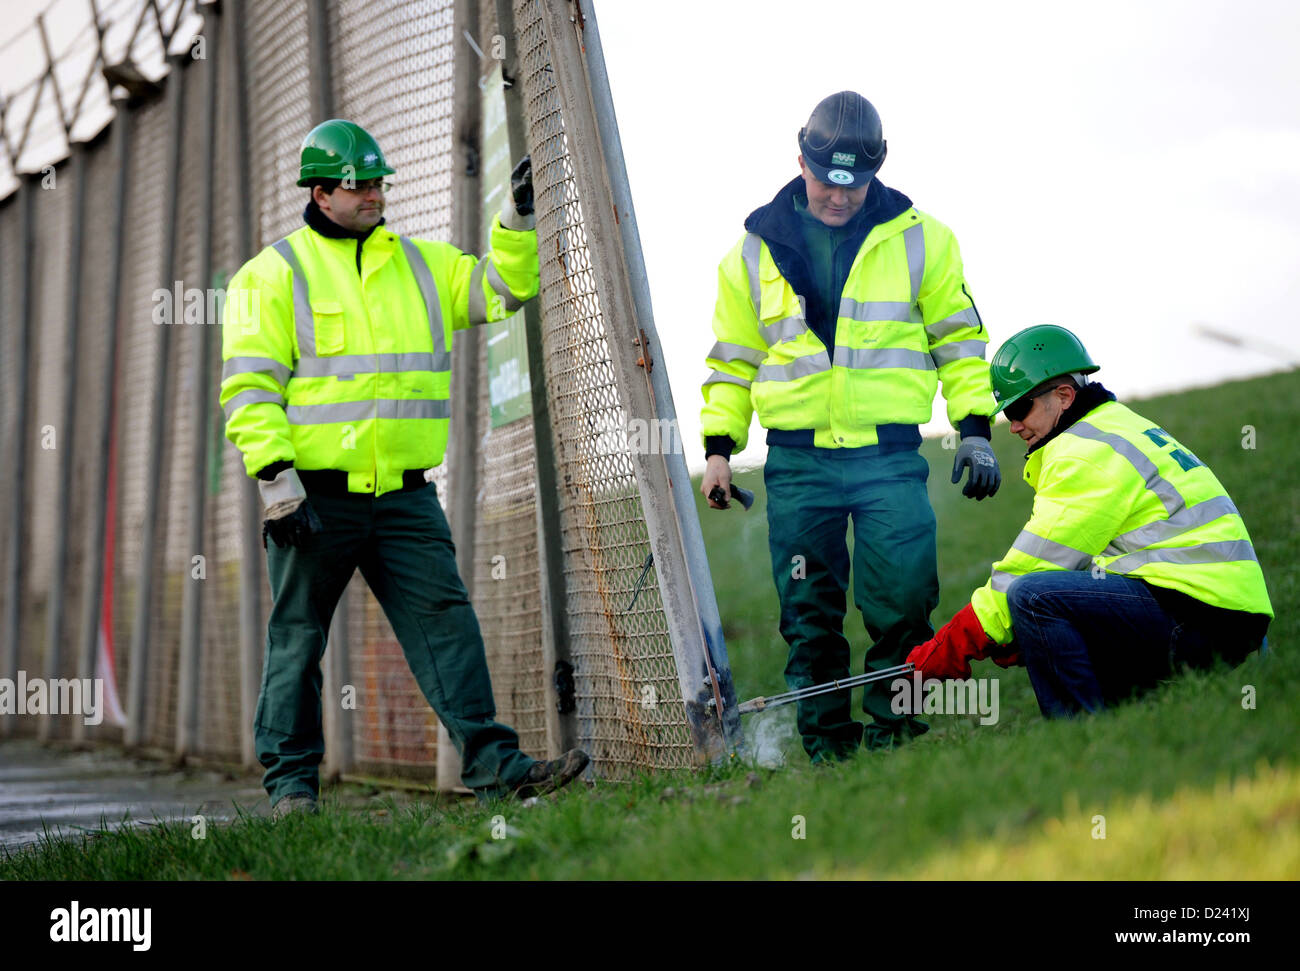 FirstMayor of Hamburg Olaf Scholz (R) symbolically opens the deconstruction of the former customs fence at - Stock Image